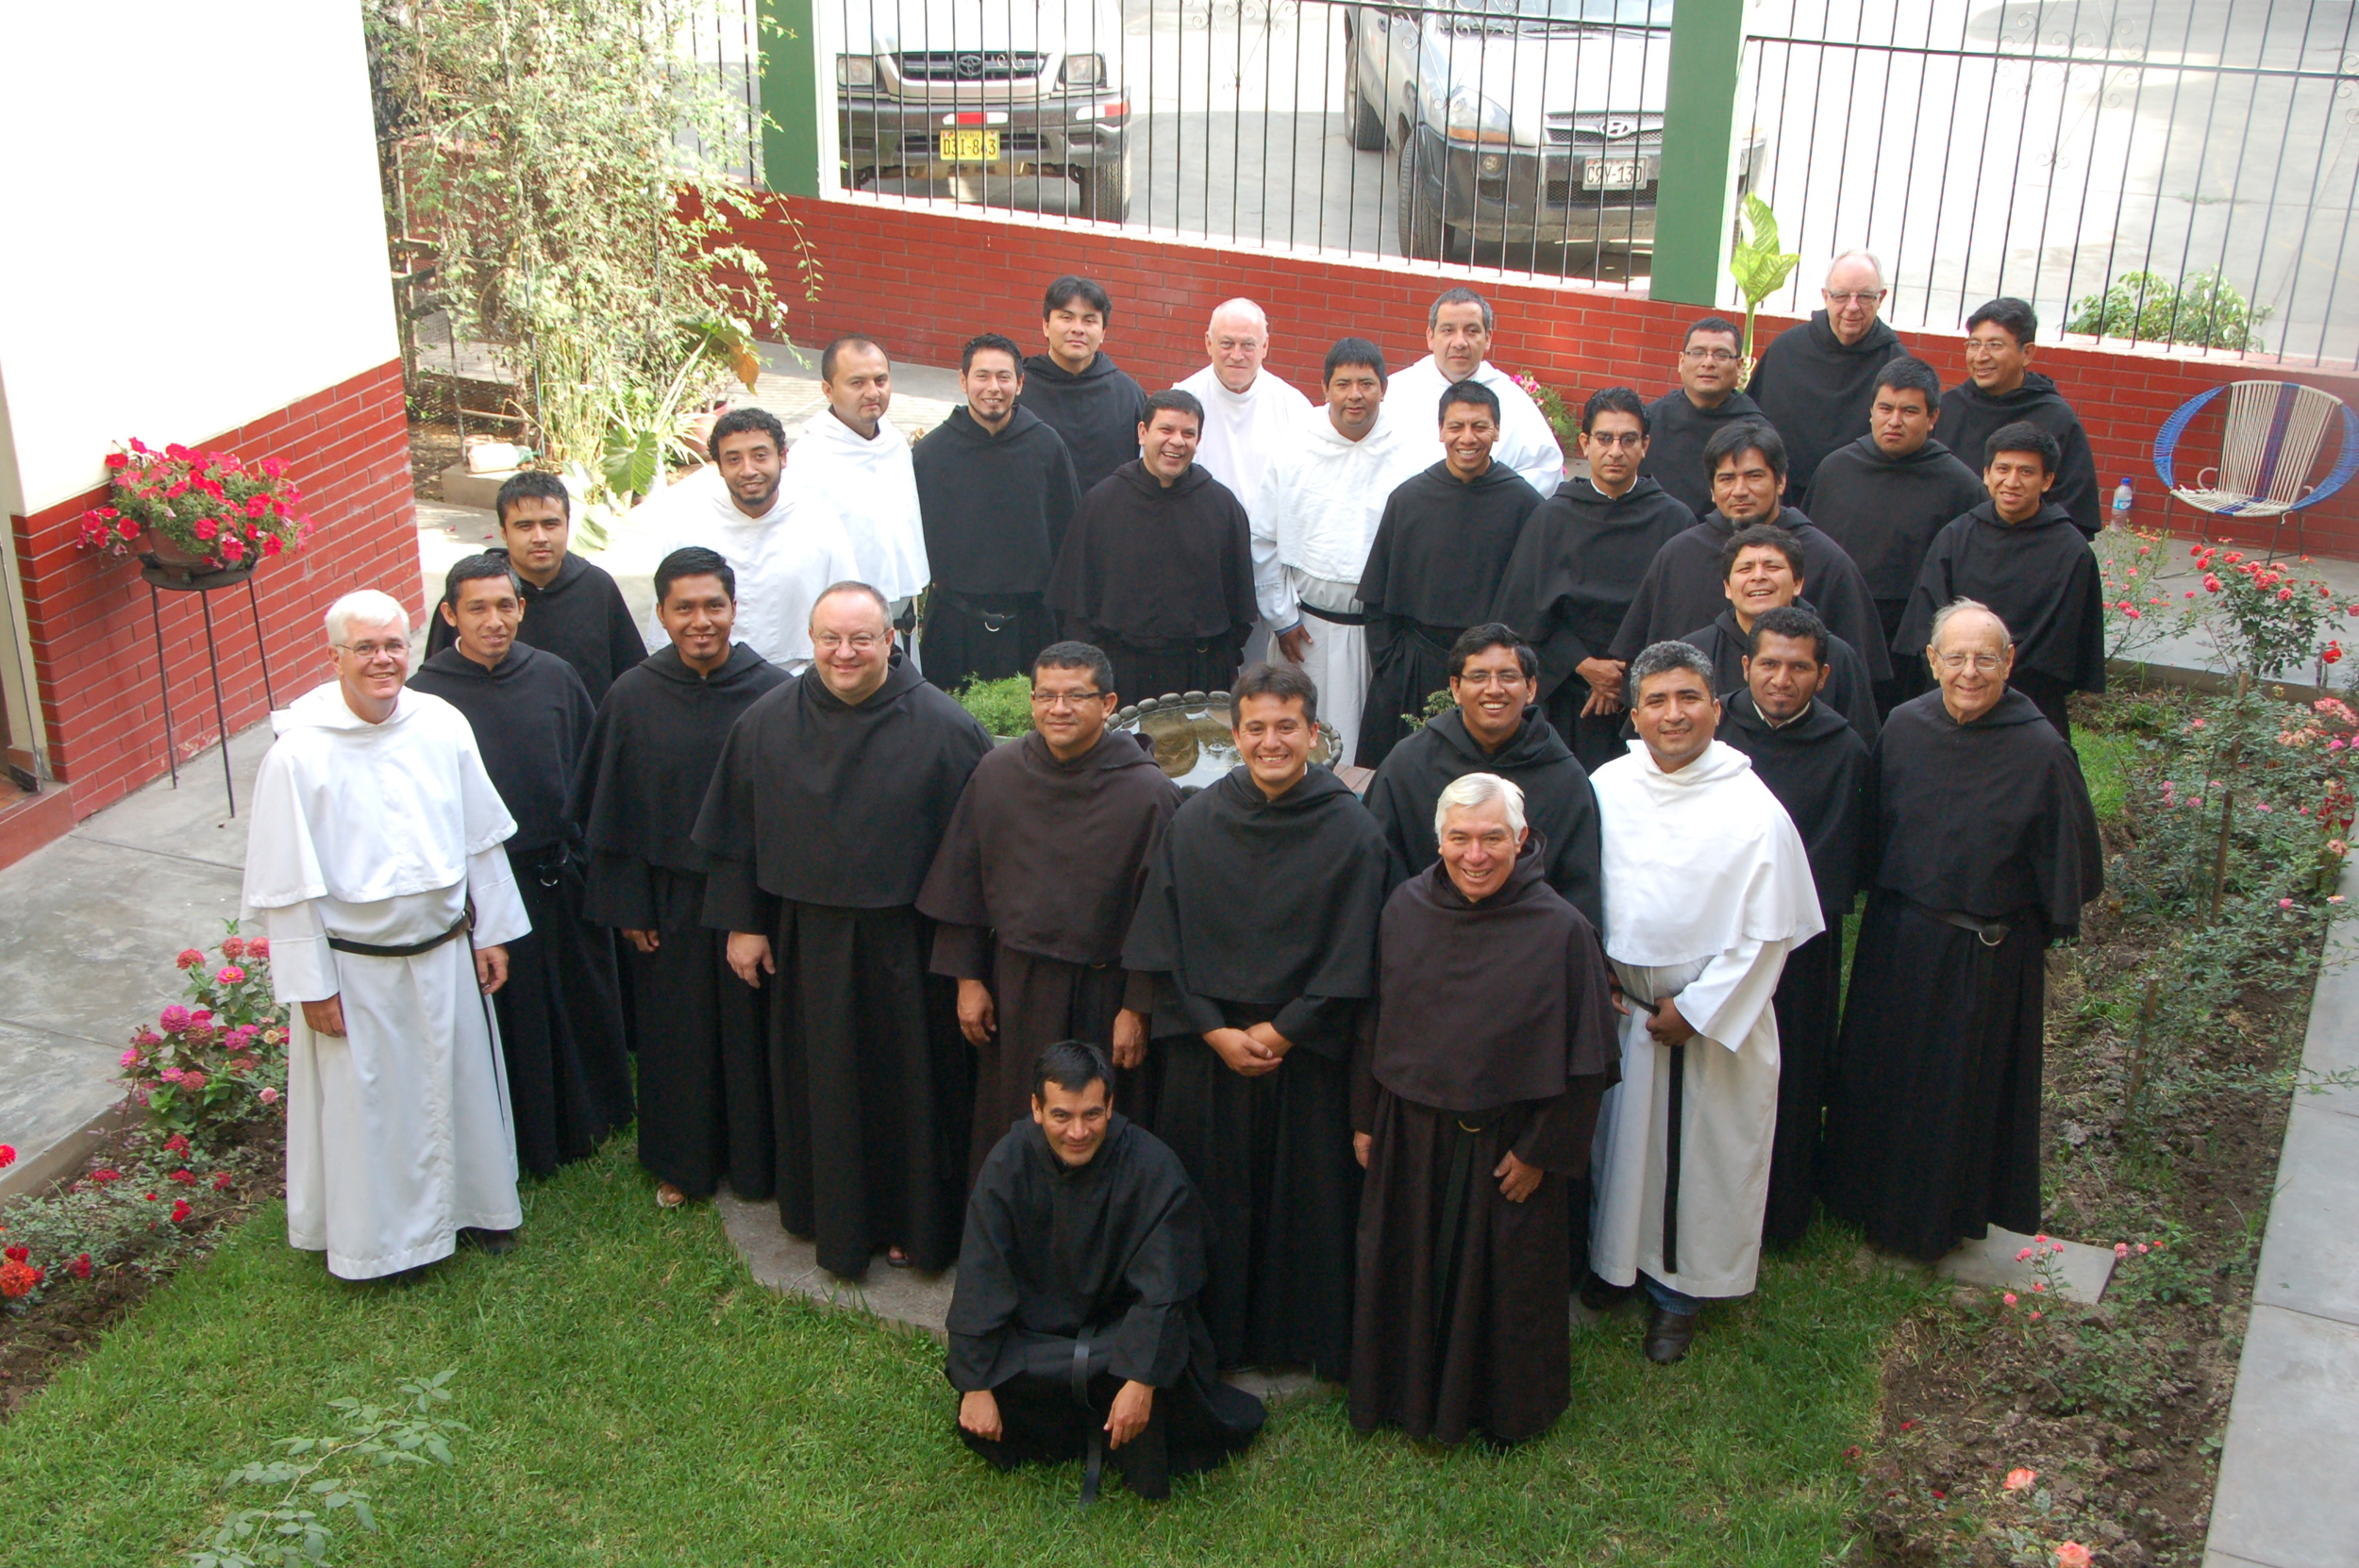 The Vicariate of San Juan de Sahagún in northern Peru now has 25 men in solemn vows and 38 men in various stages in formation.